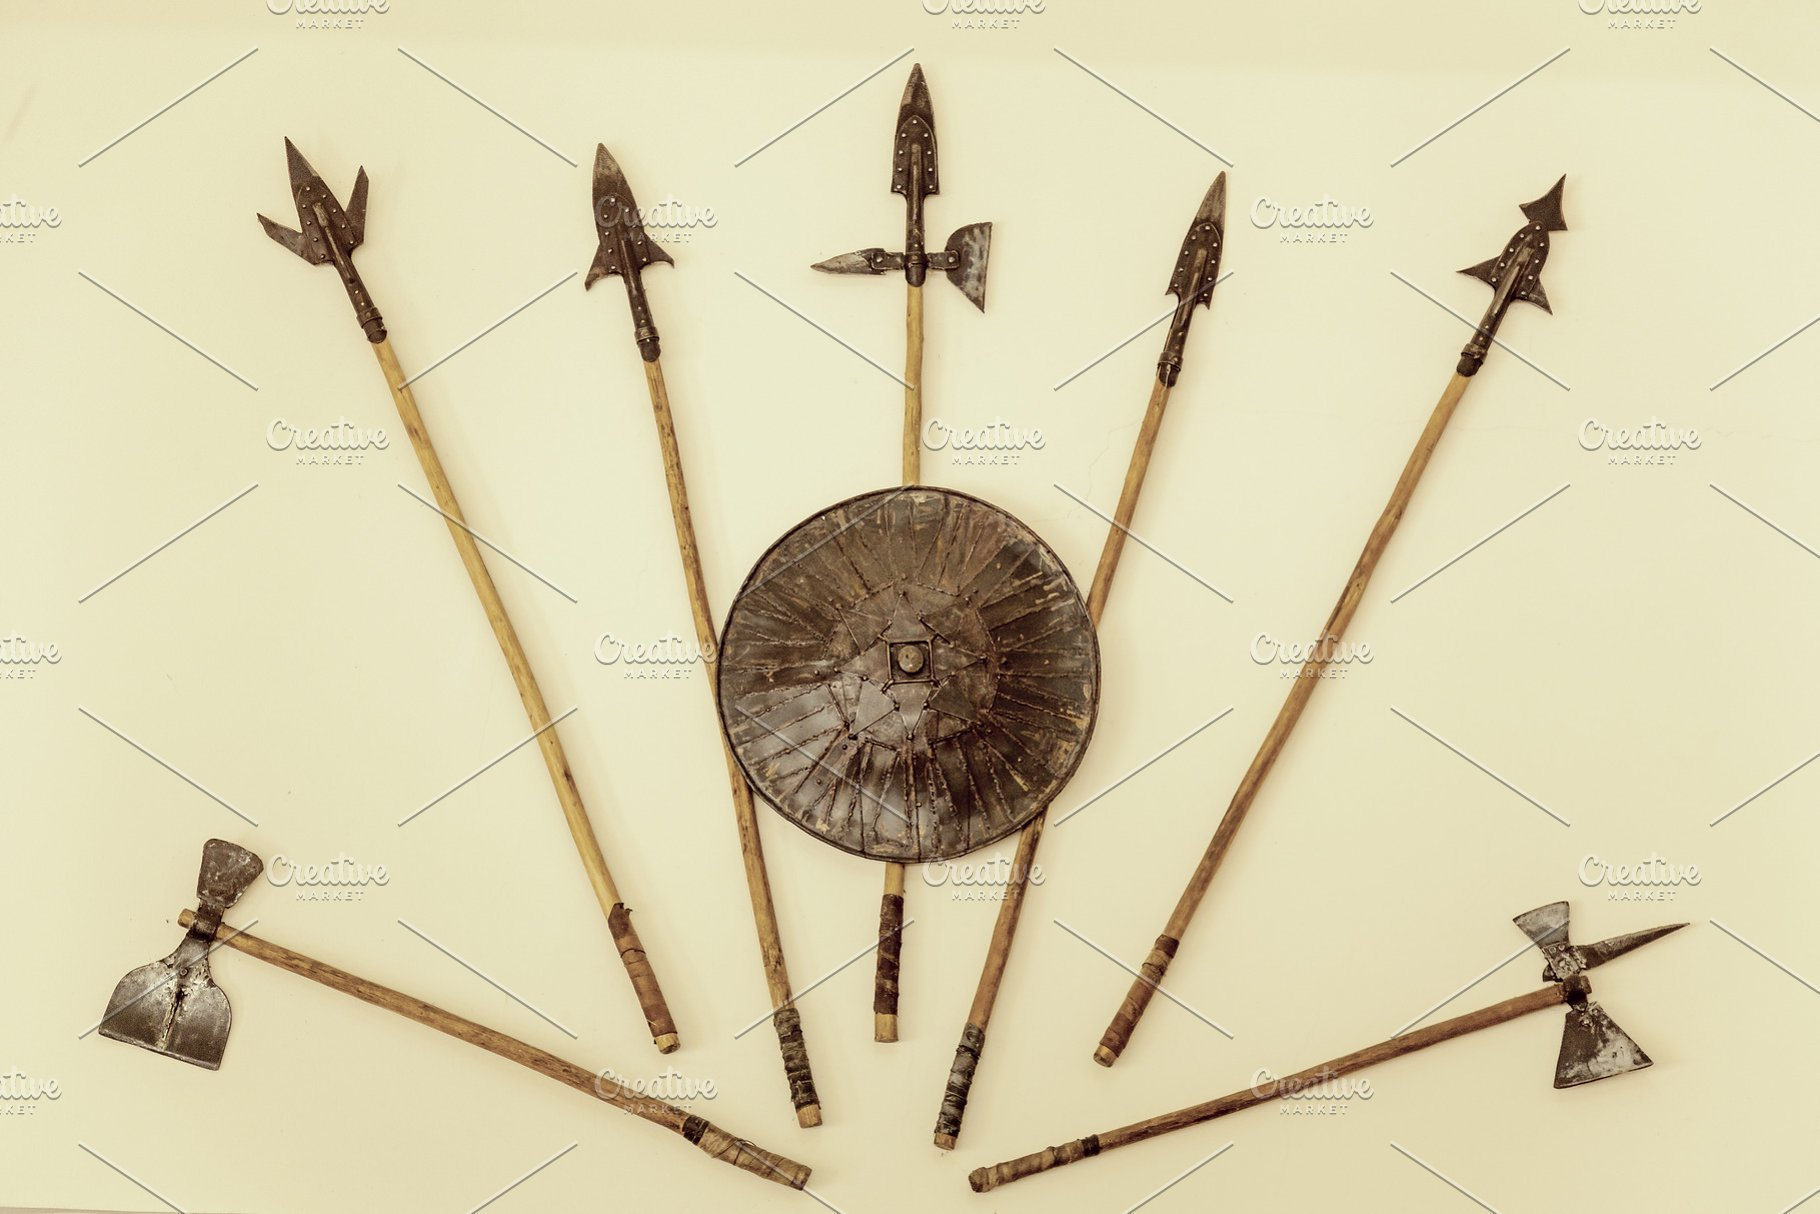 weapons of a warrior, spears, axes, shield